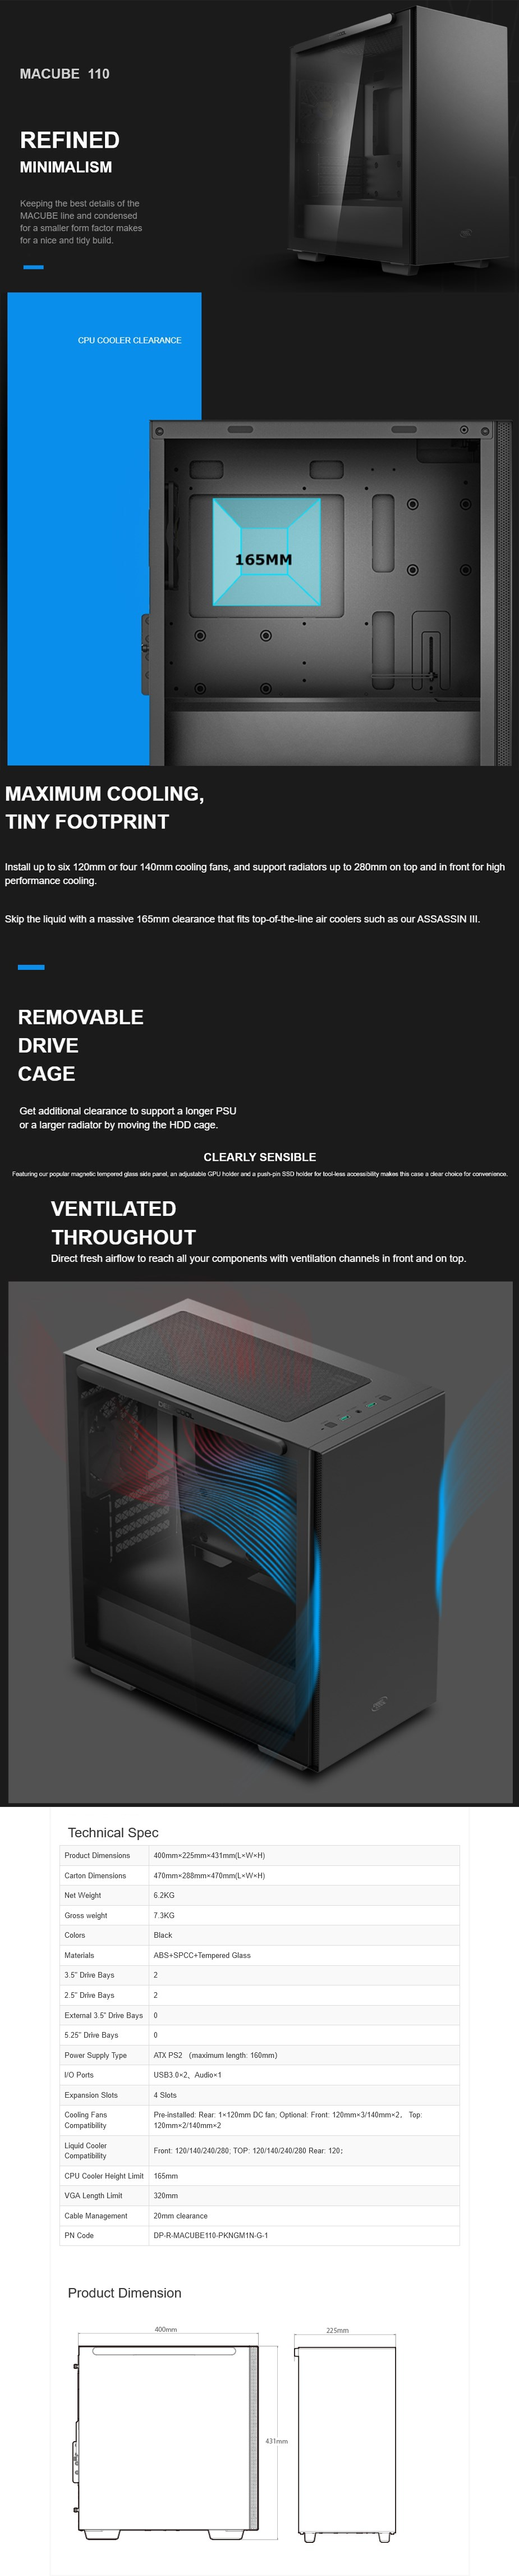 Deepcool MACUBE 110 Tempered Glass Mini Tower Micro-ATX Case - Pink - Desktop Overview 1